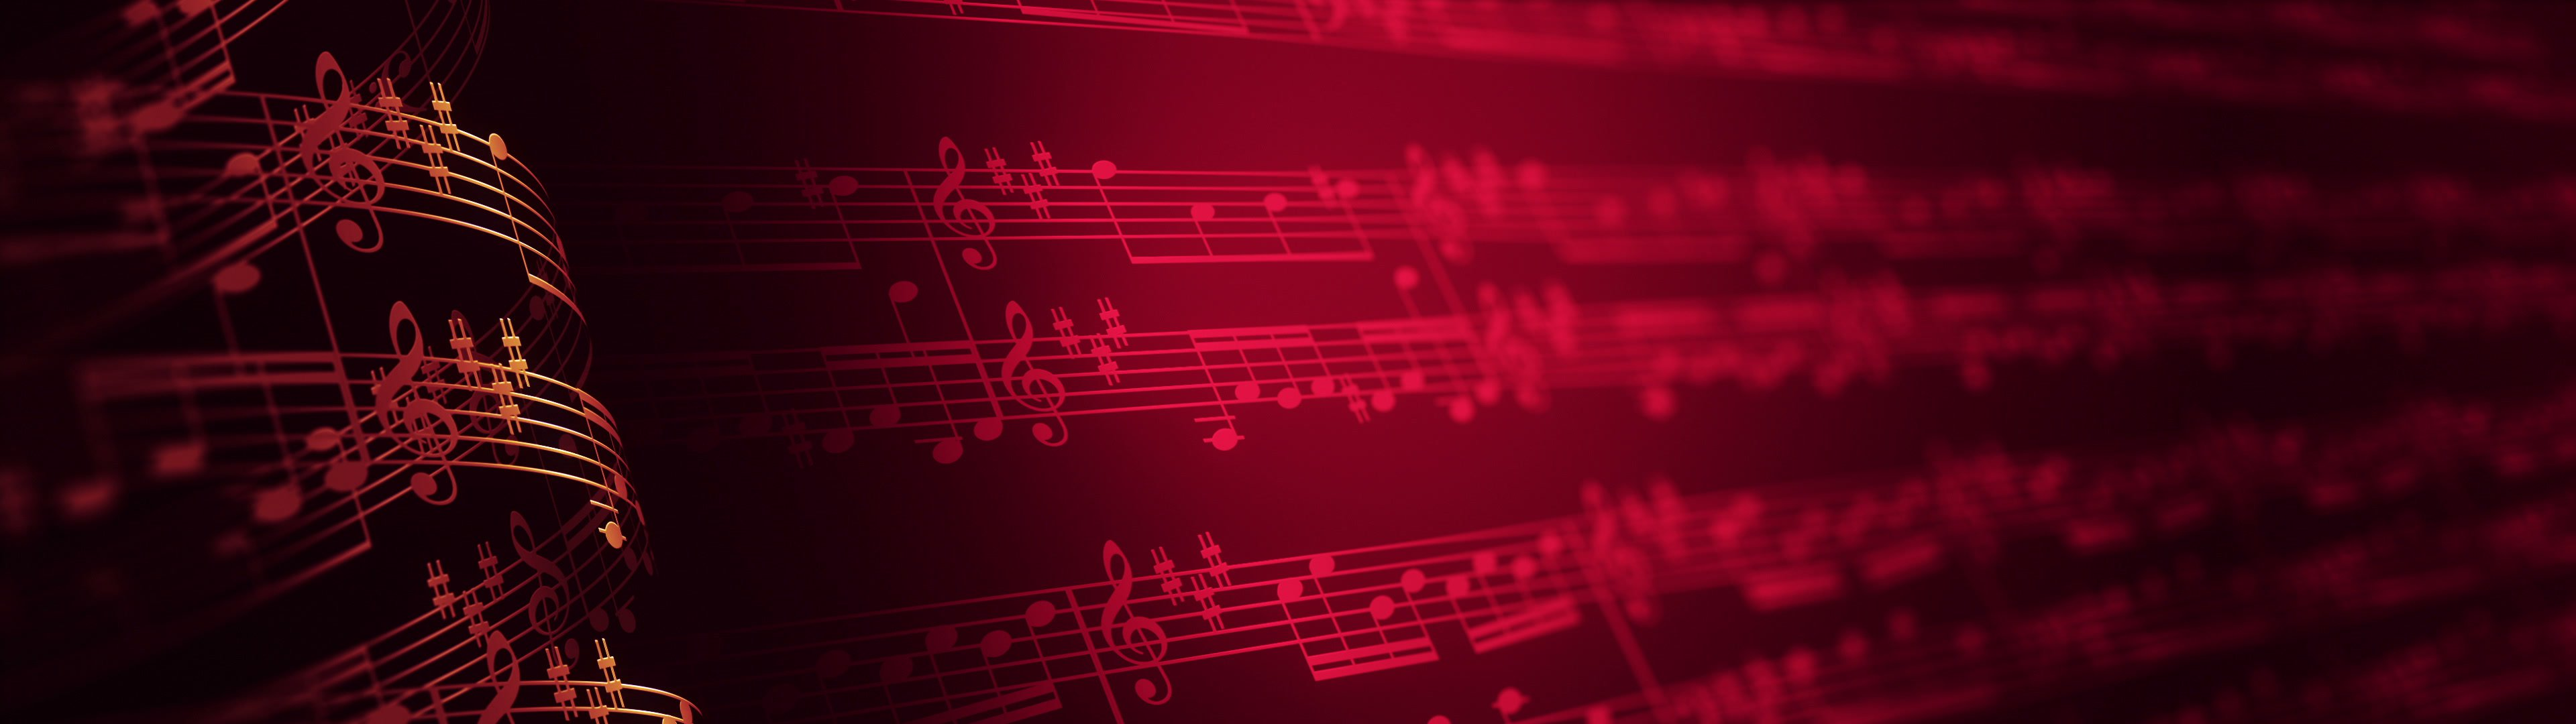 Musical notes composition background, LOOP. | Music notes symbols. Musical notes composition background. Seamless loop. Versions: 4k, Ultra HD, Full HD (1080p). - ID:23540